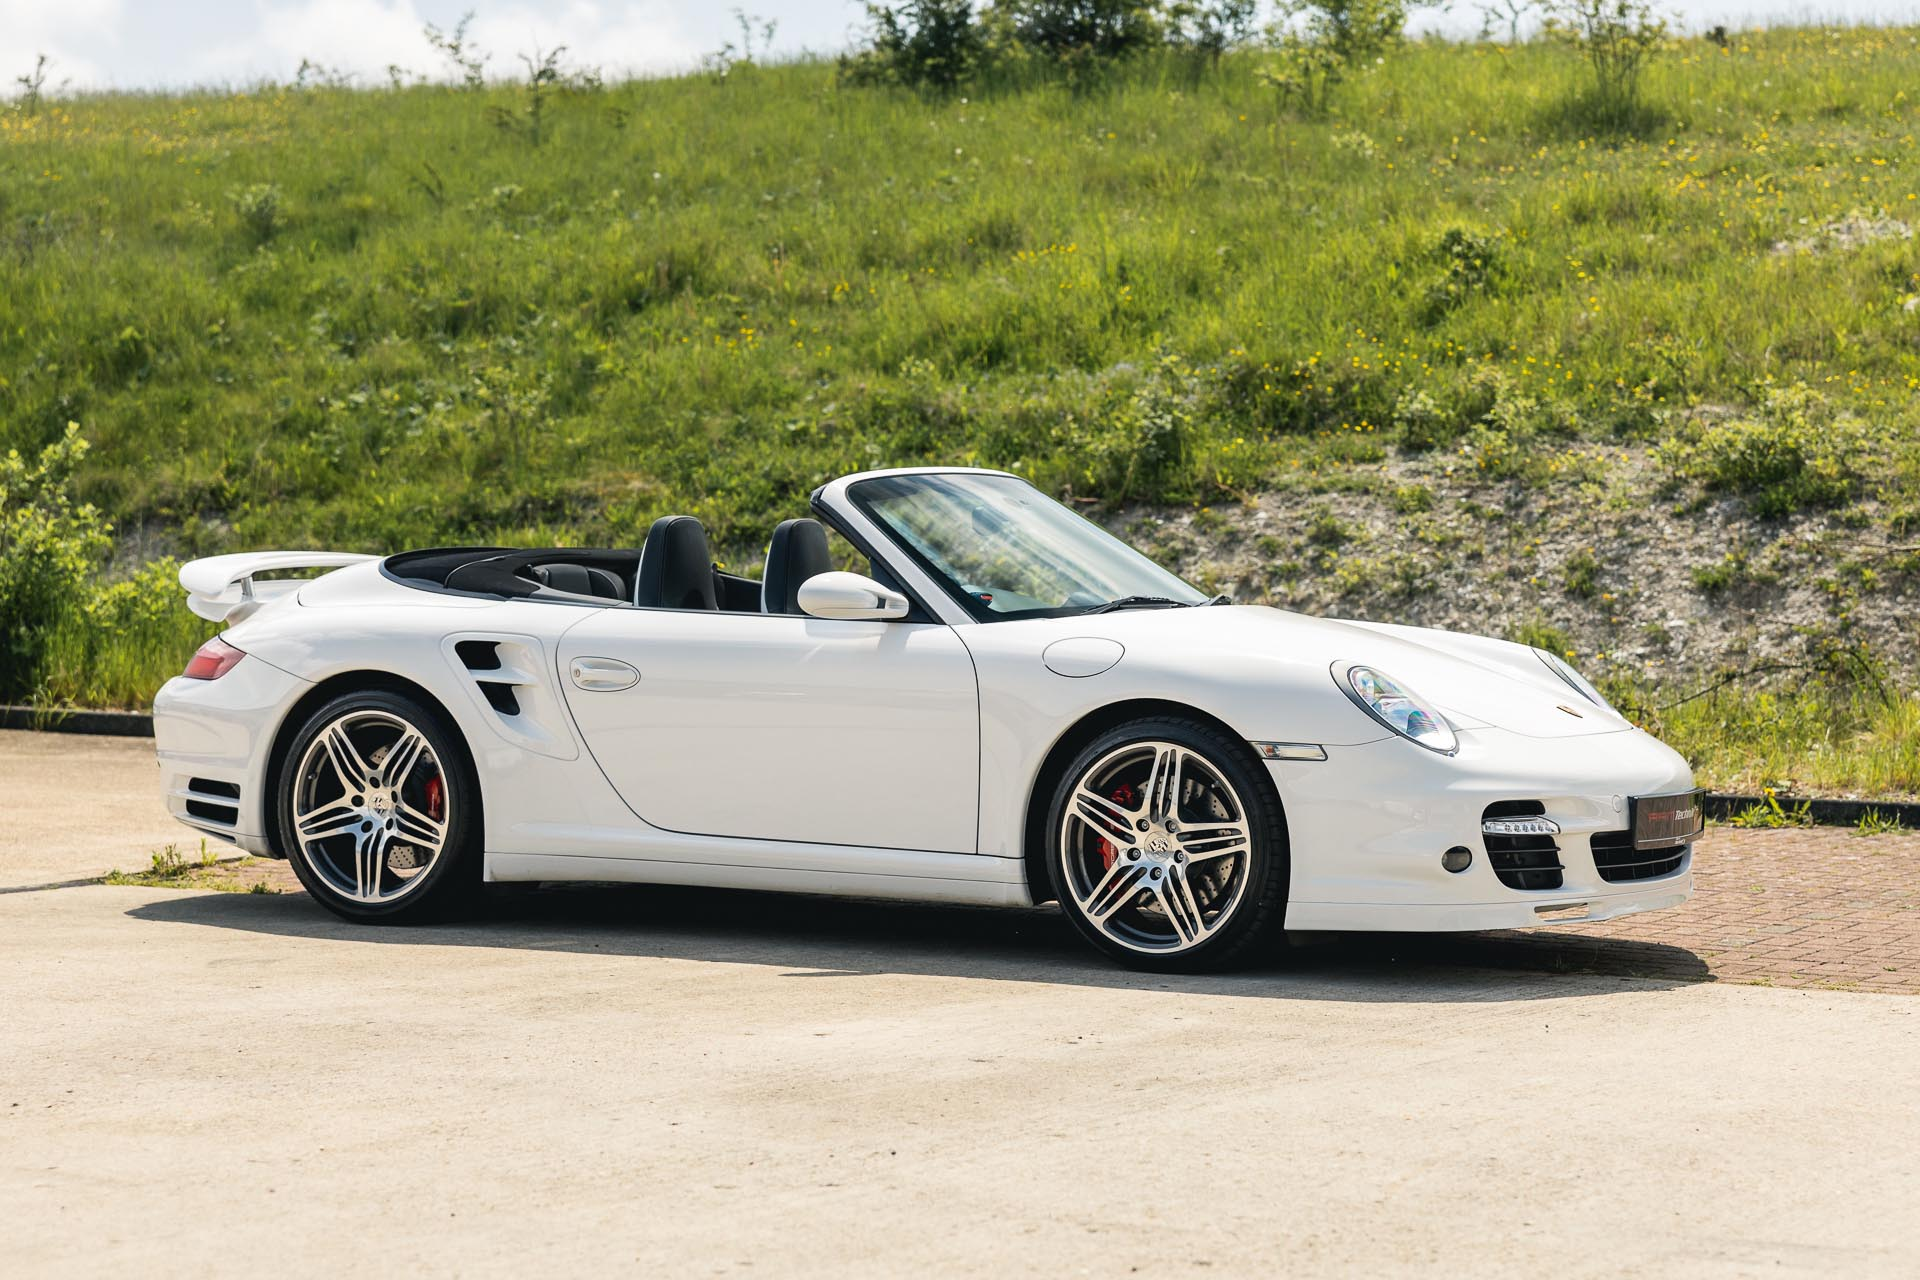 997-turbo-cab-roof-down